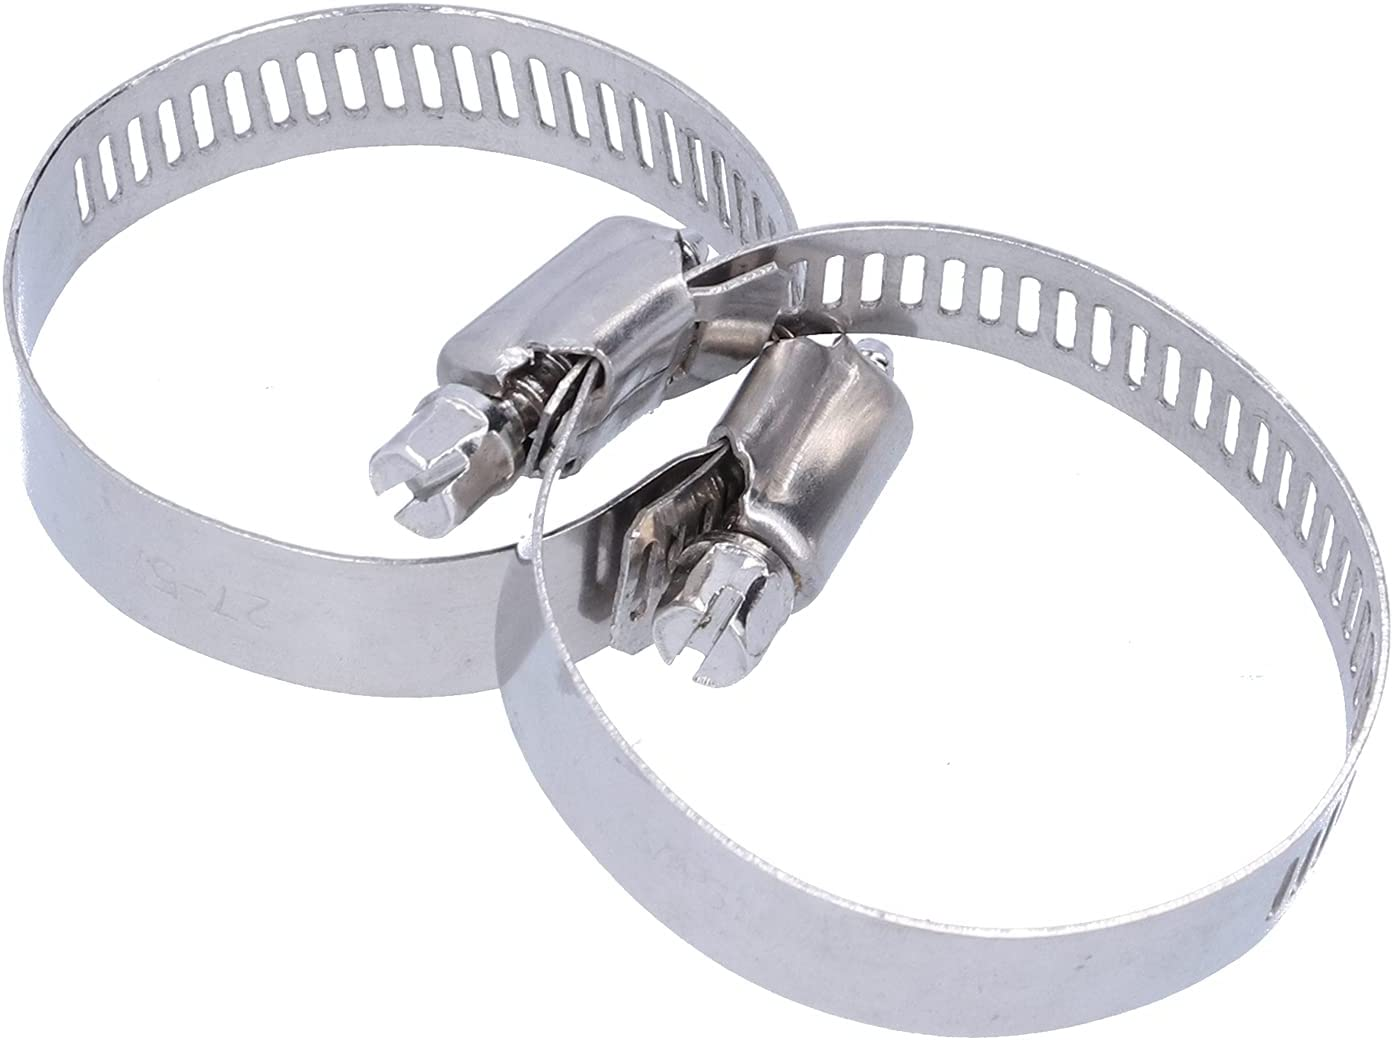 Gaeirt Mini Hose Max 51% OFF Clamp Wide Range Popular brand in the world Mat Applications Clip of